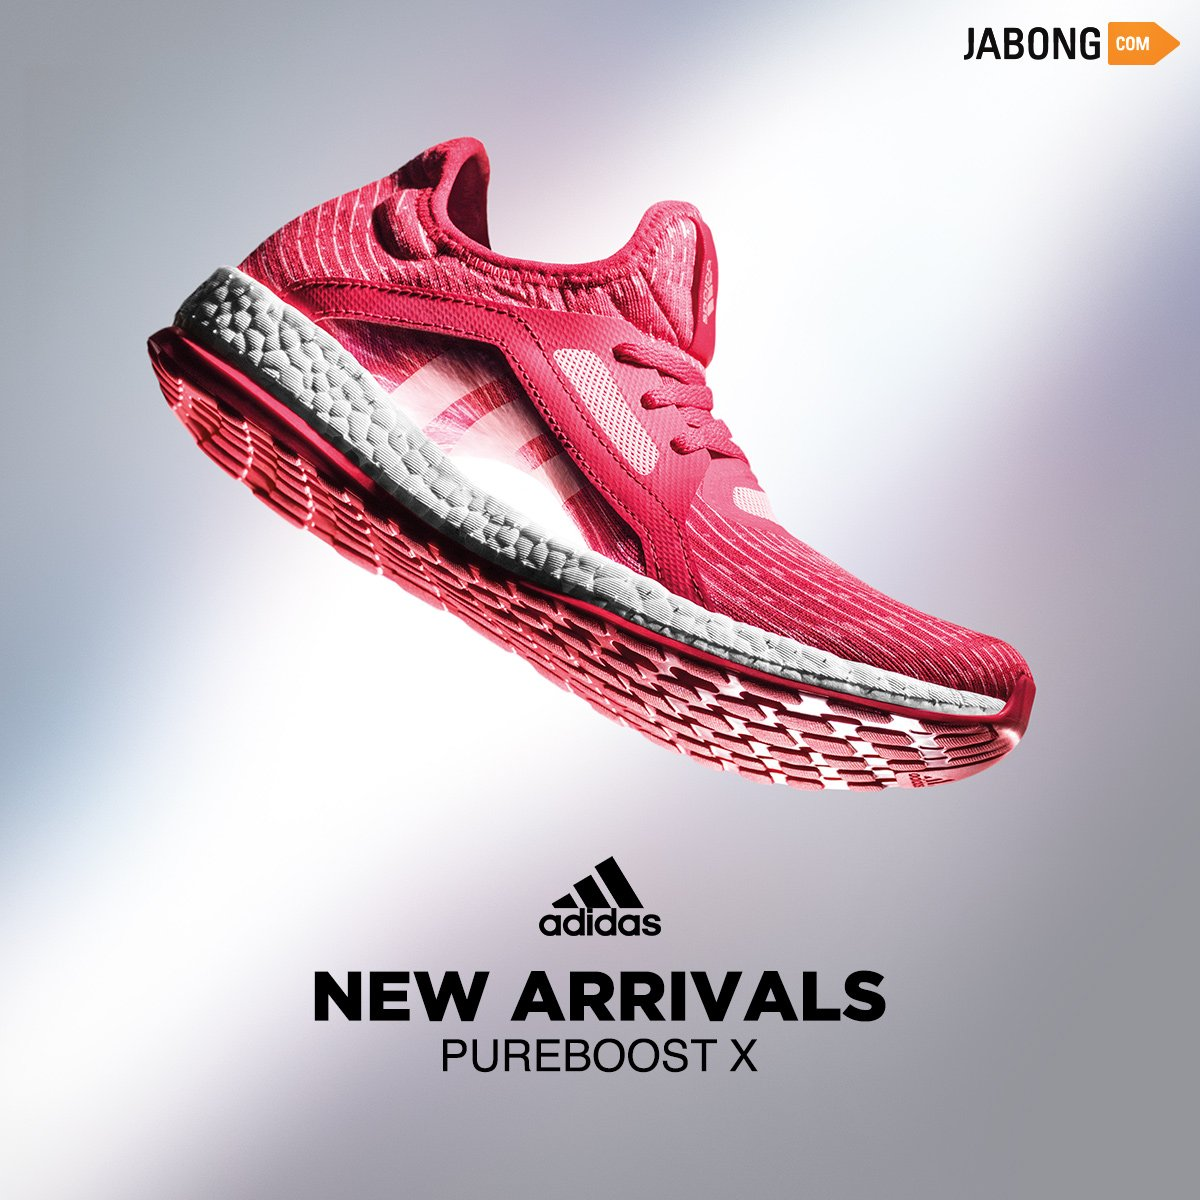 695087cba45 authentic puma smashvulc white sneakers cd8b7 971bb  ebay jabong on twitter  its here the new adidas pure boost x take your workouts to